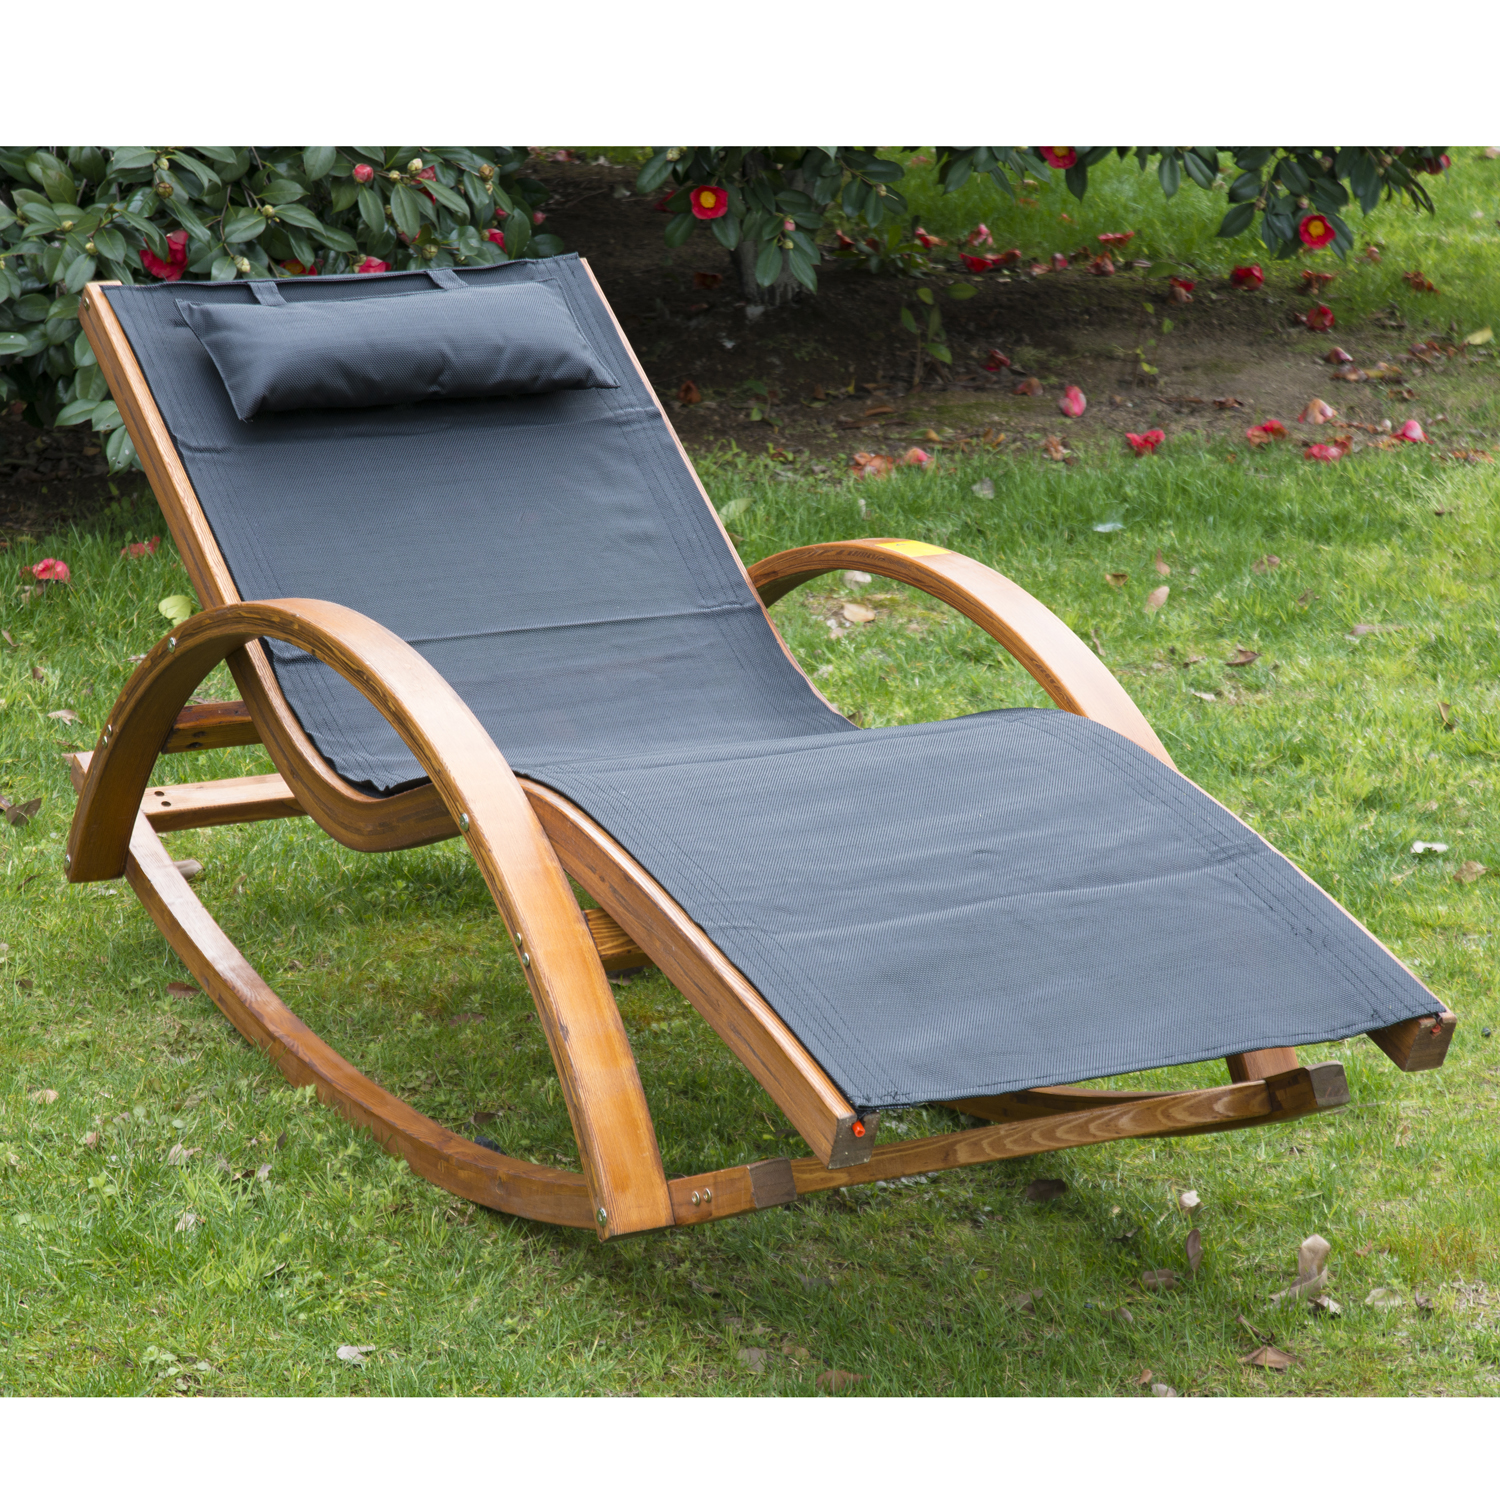 Outsunny Rocking Mesh Patio Recliner w/ Pillow - Black